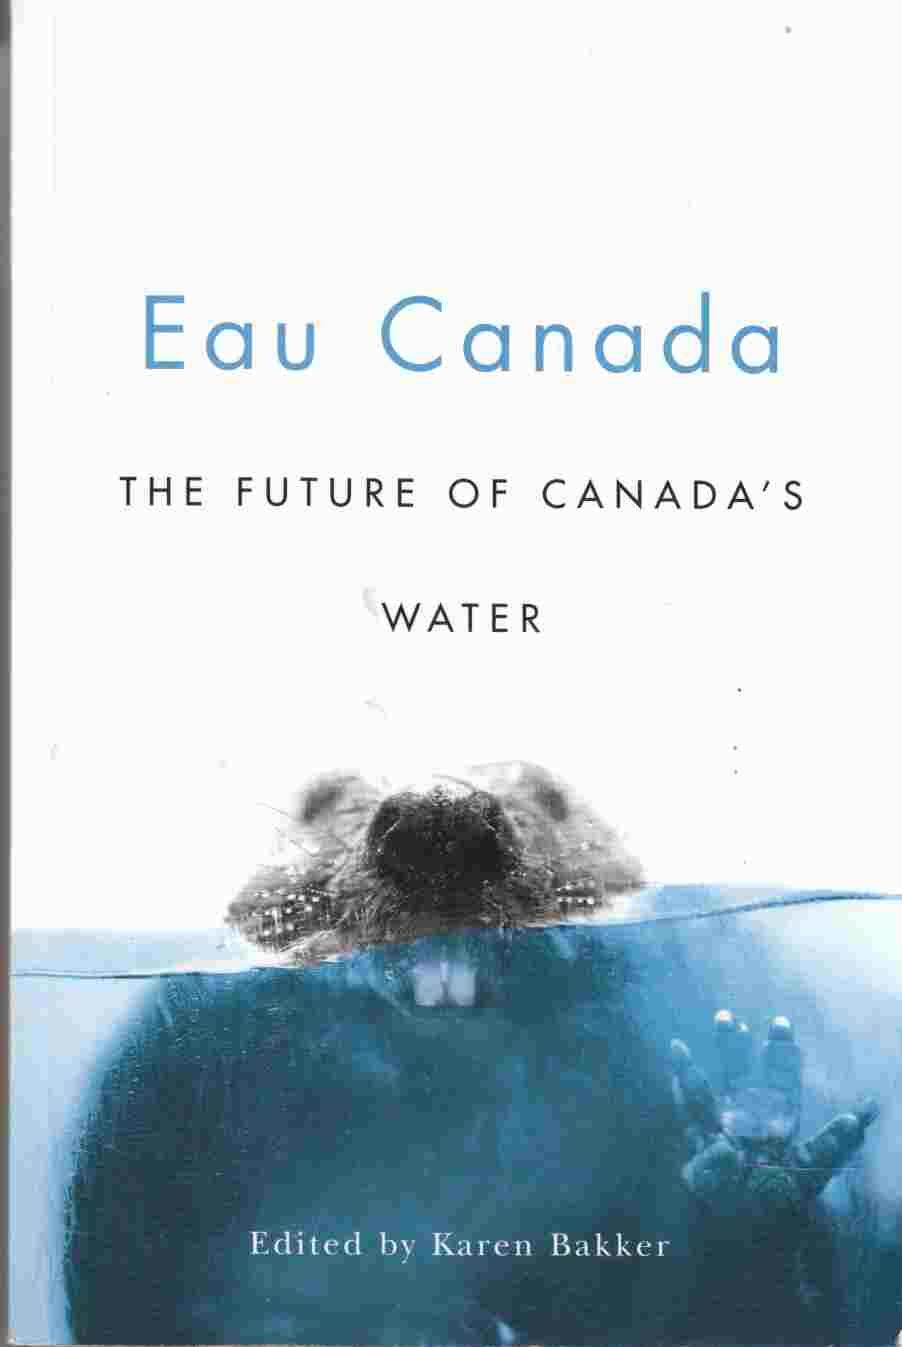 Image for Eau Canada The Future of Canada's Water